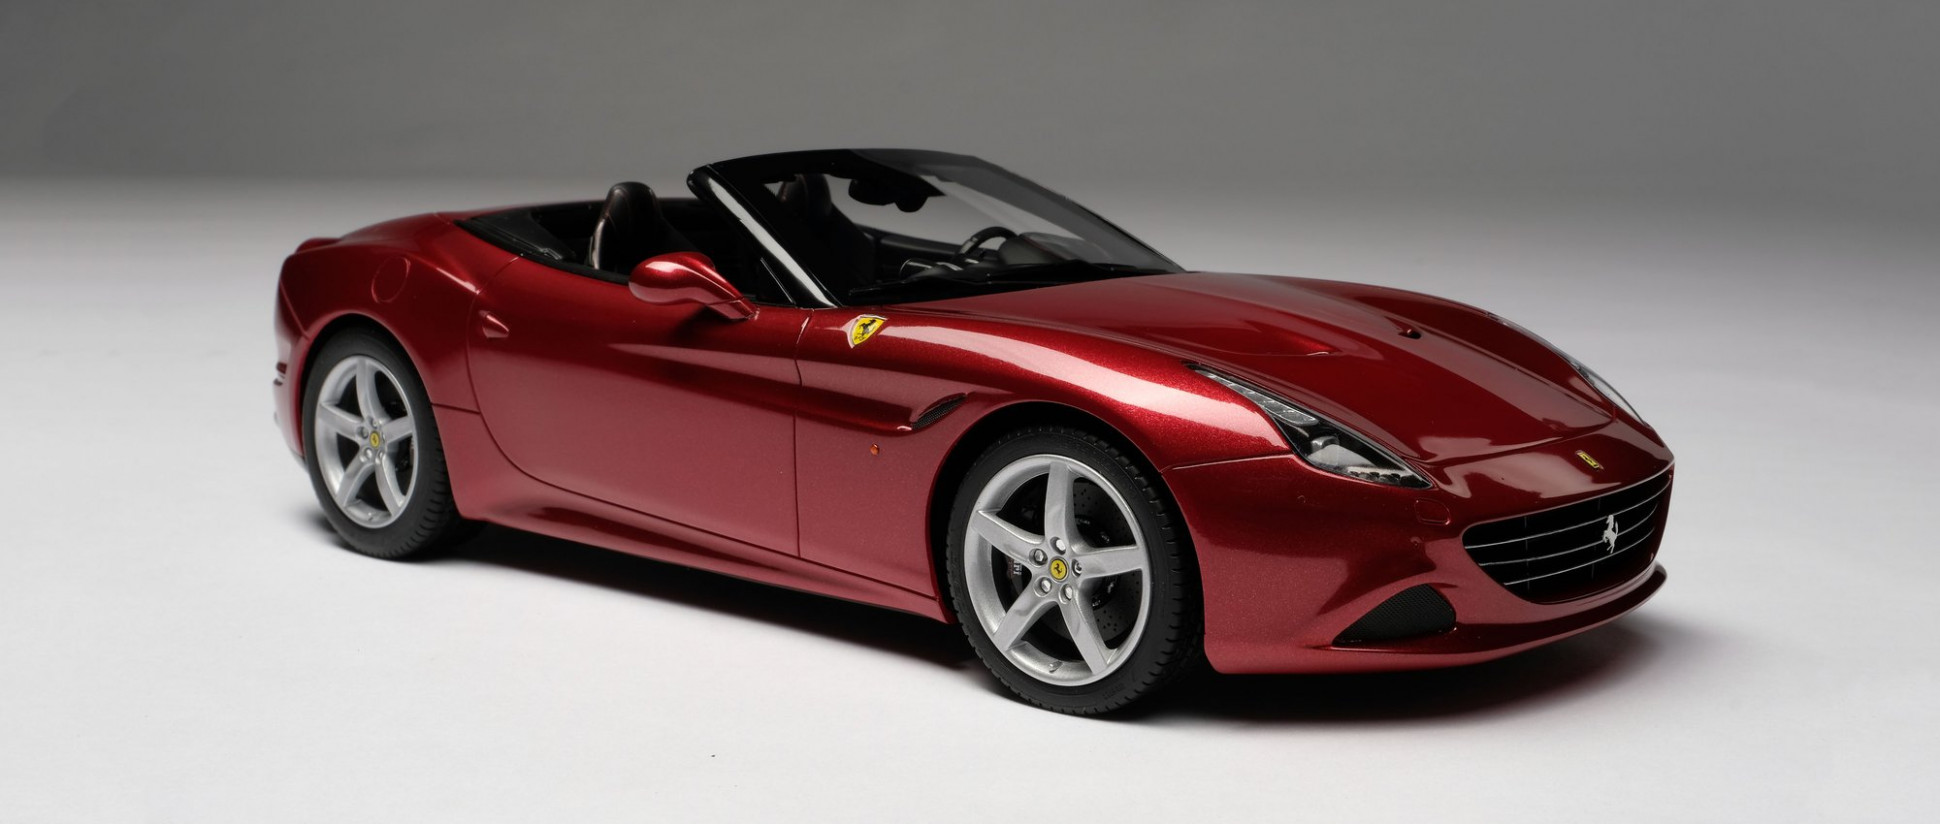 Ferrari California T – Amalgam Collection - 2020 ferrari california t for sale